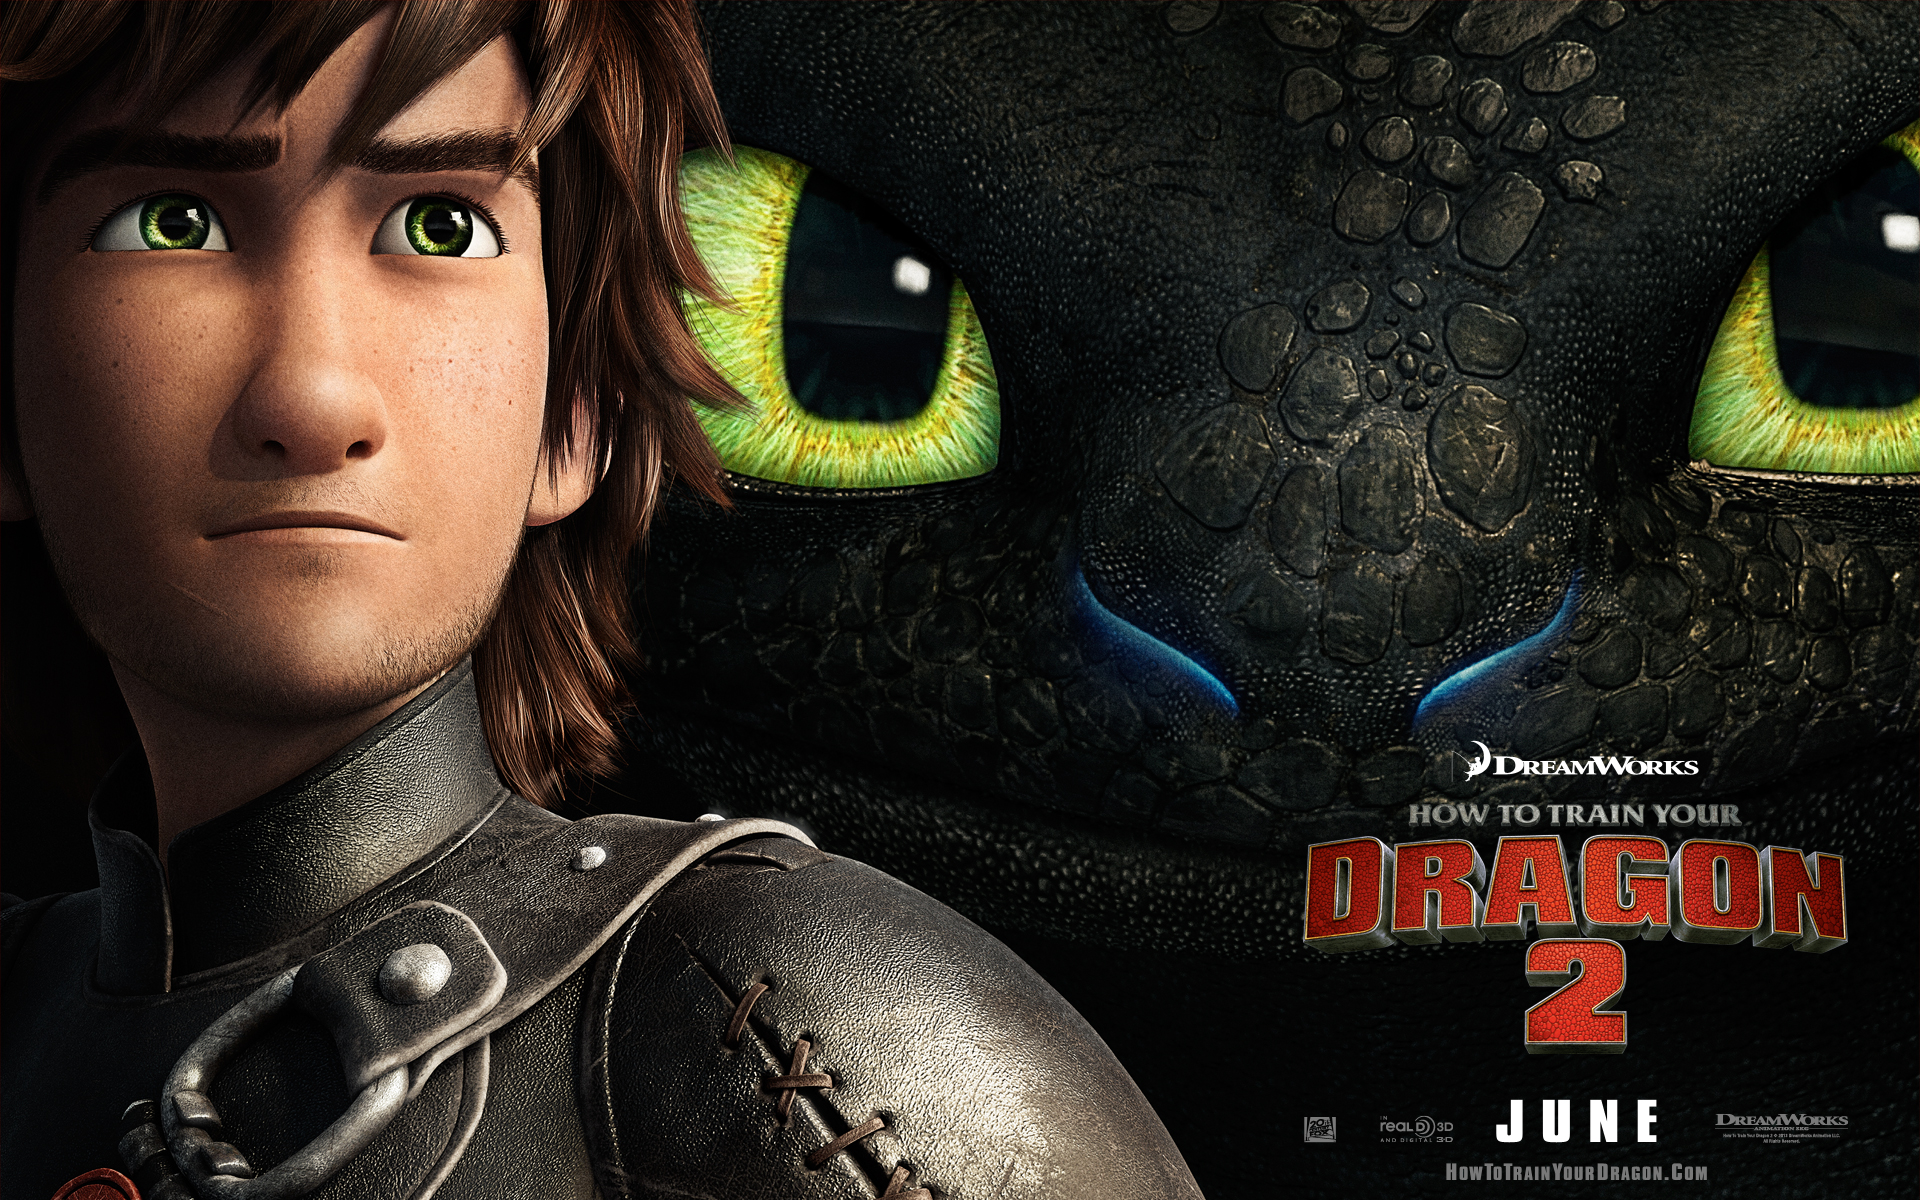 How To Train Your Dragon 2 Wallpaper 1 Wallpapersbq